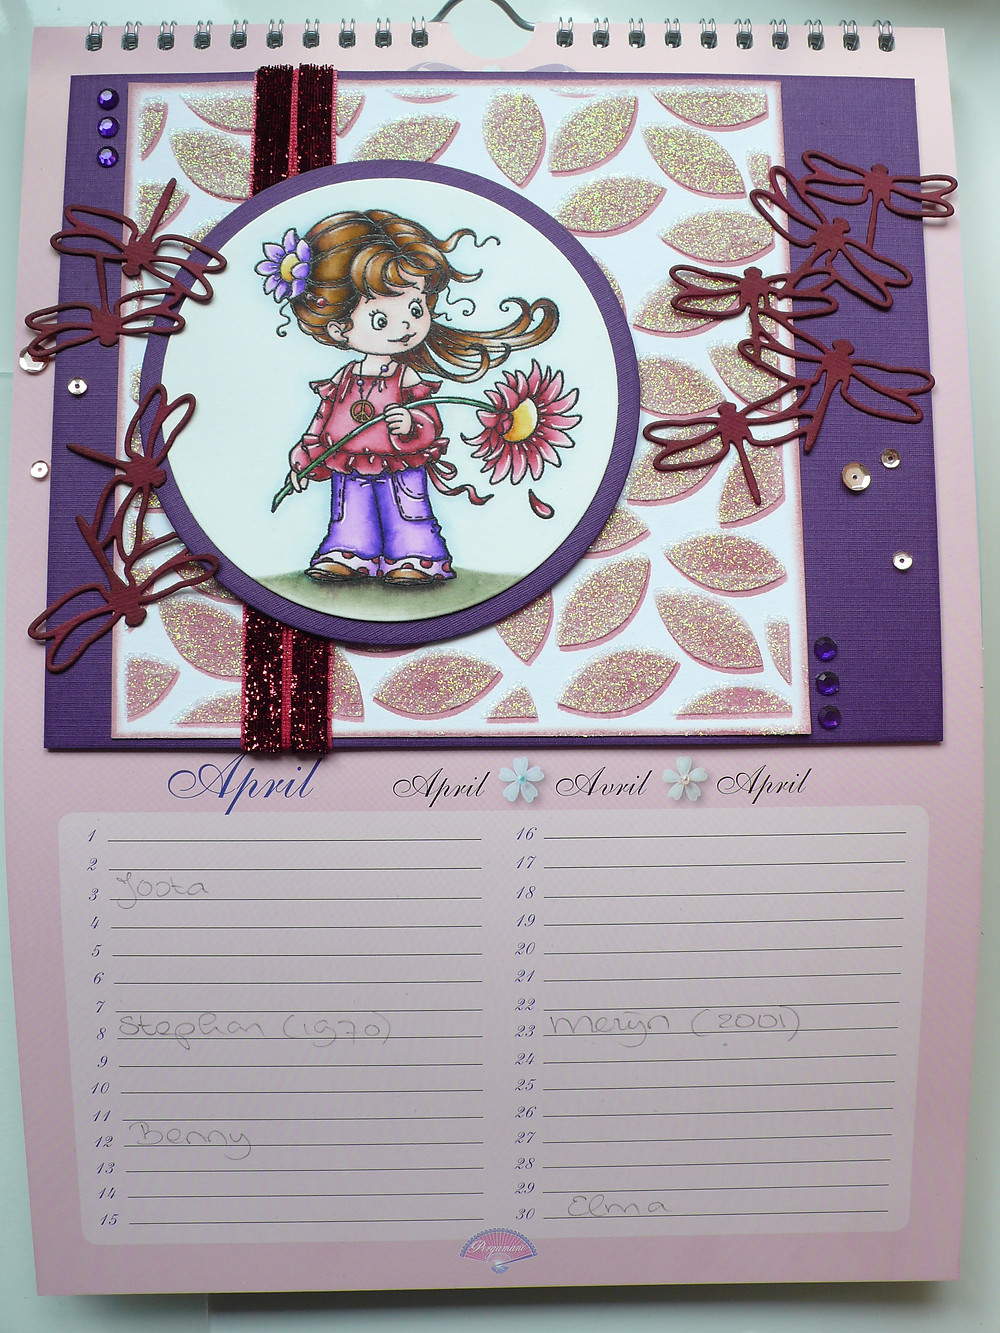 whimsy stamps peace nuvo glimmer paste moonstone stampin'up dragonfly die set winnie and walter the leaf effect